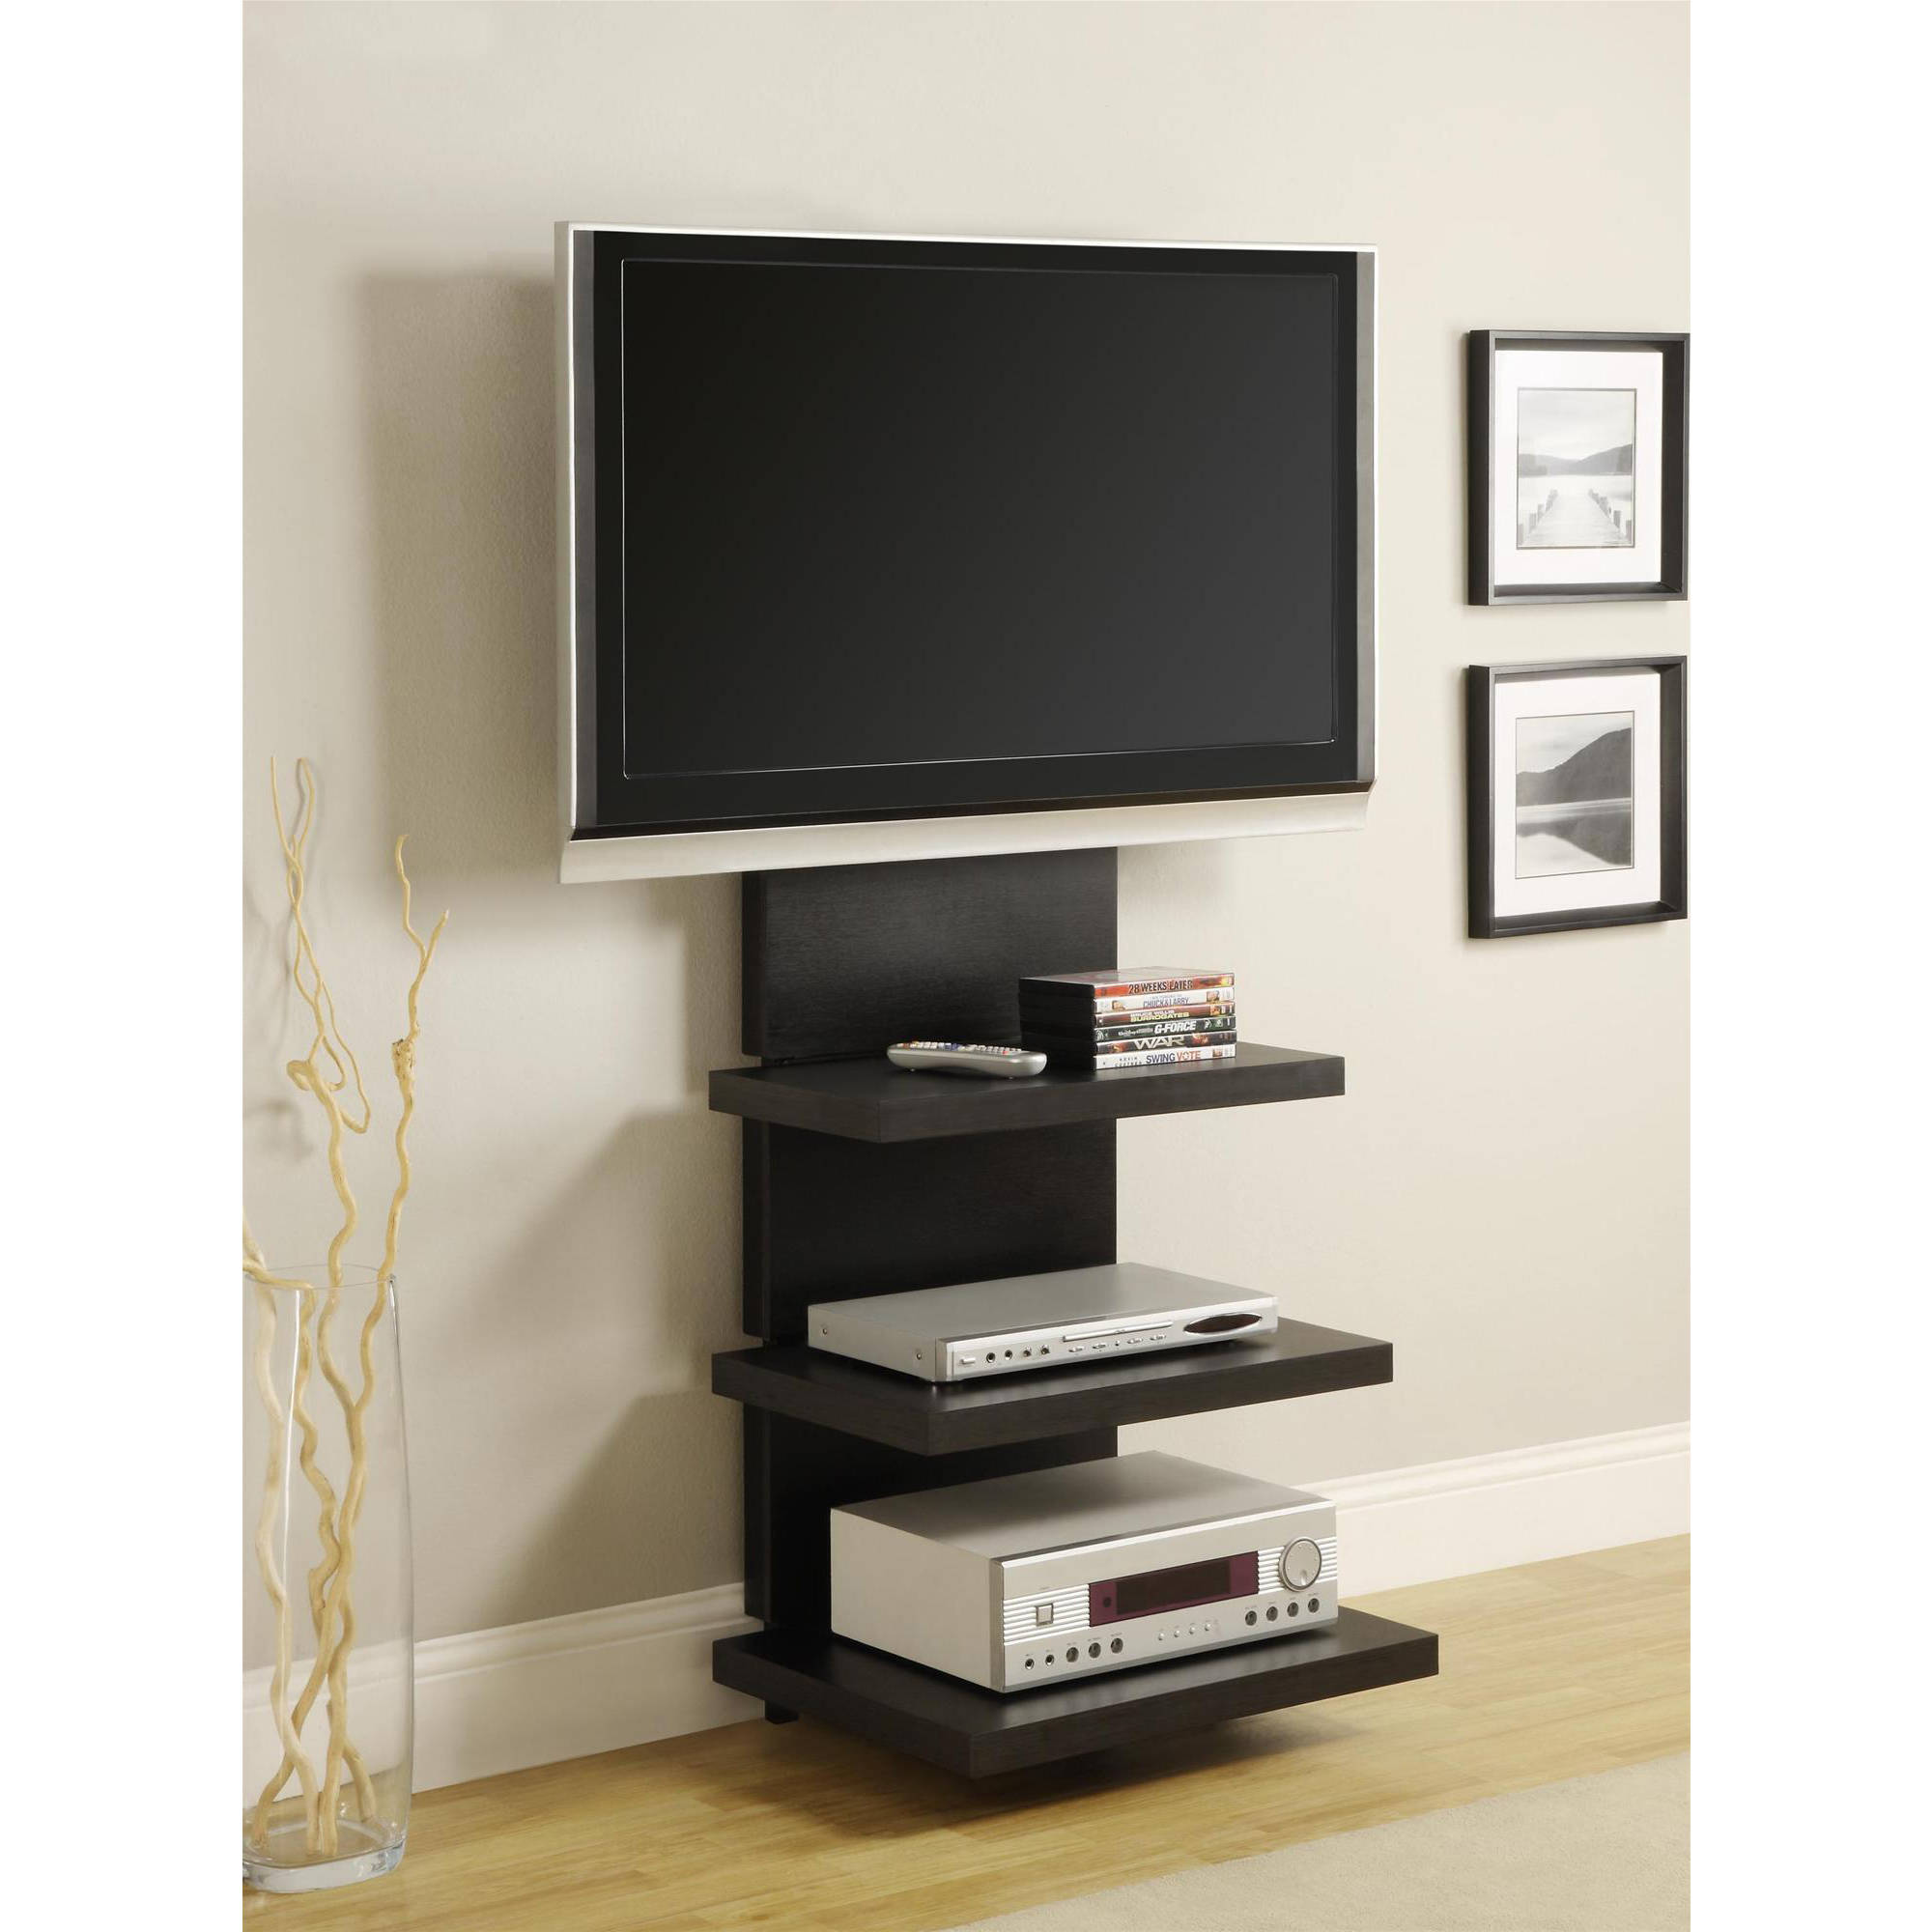 Altra Wall Mount TV Stand with 3 Shelves, for TVs up to 60""